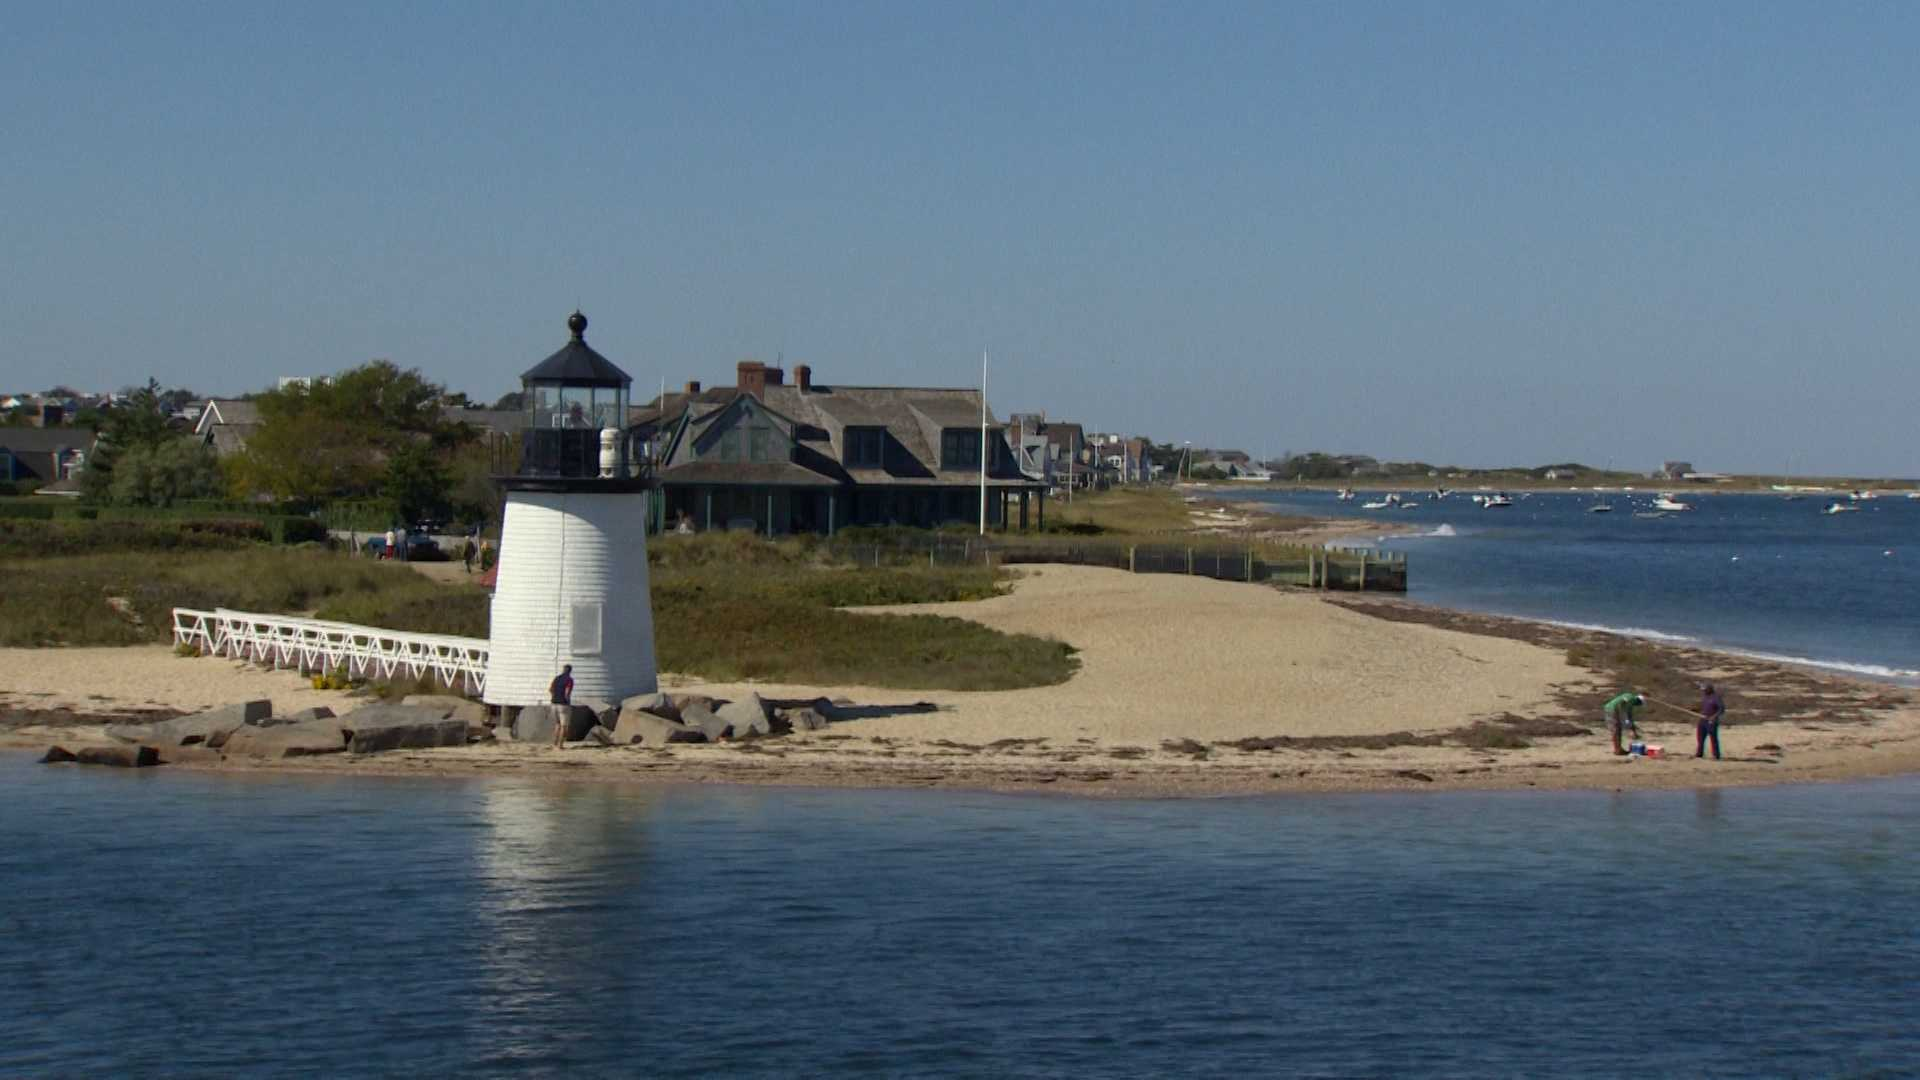 Monday, October 3: Main Streets and Back Roads: Nantucket